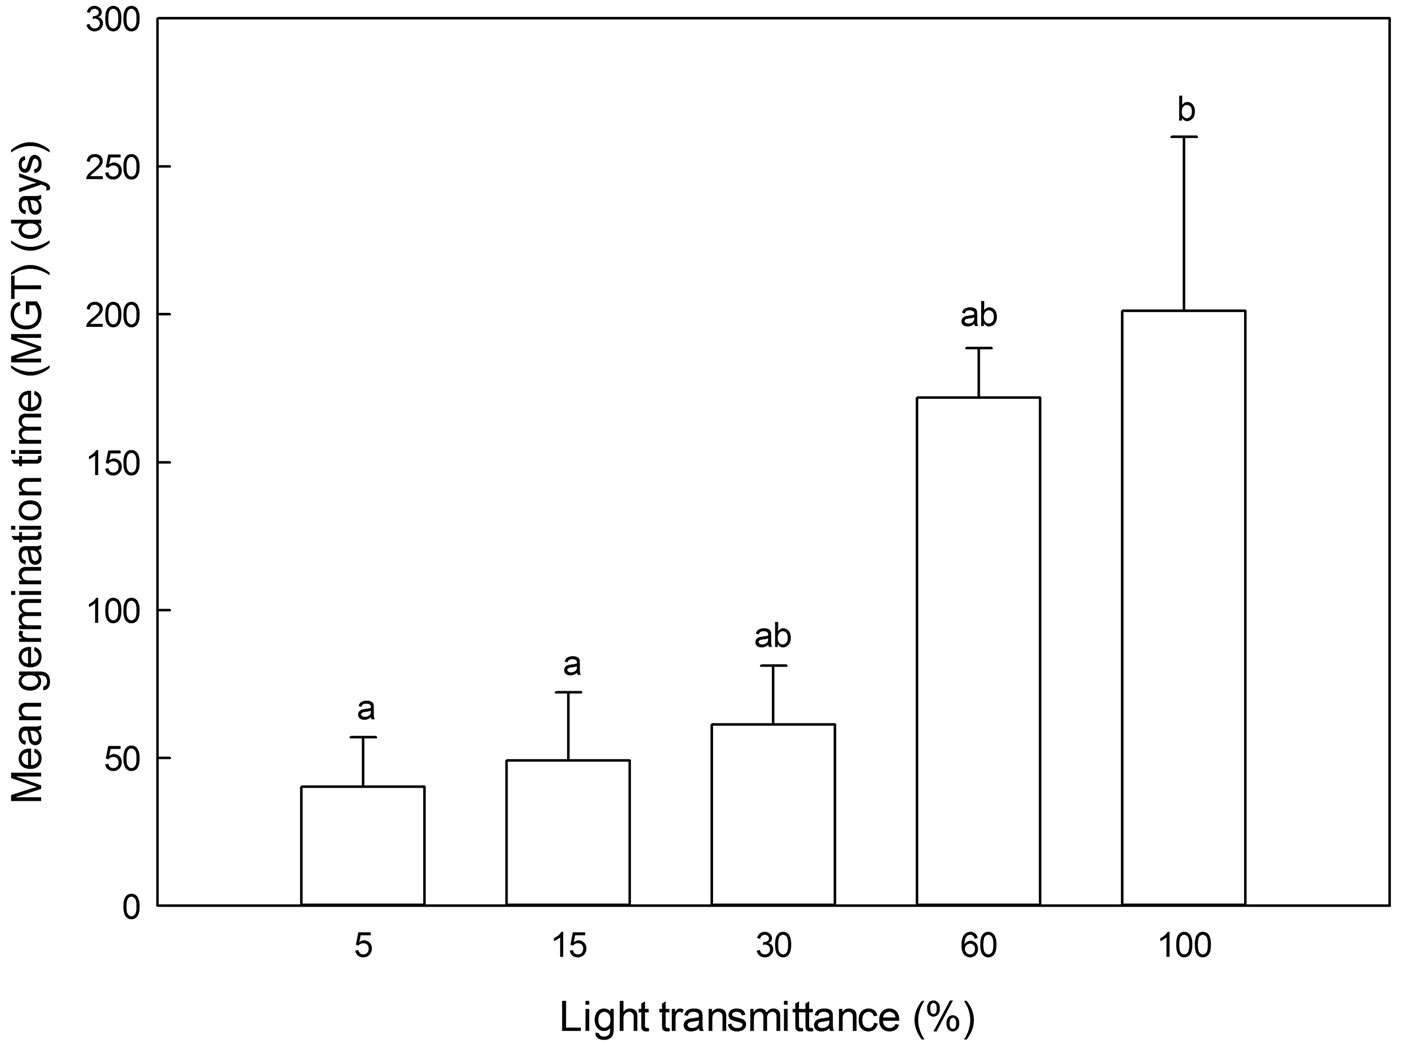 Zhang M Yan Q Zhu J 2015 Optimum Light Transmittance For Seed Germination Diagram Fig 5